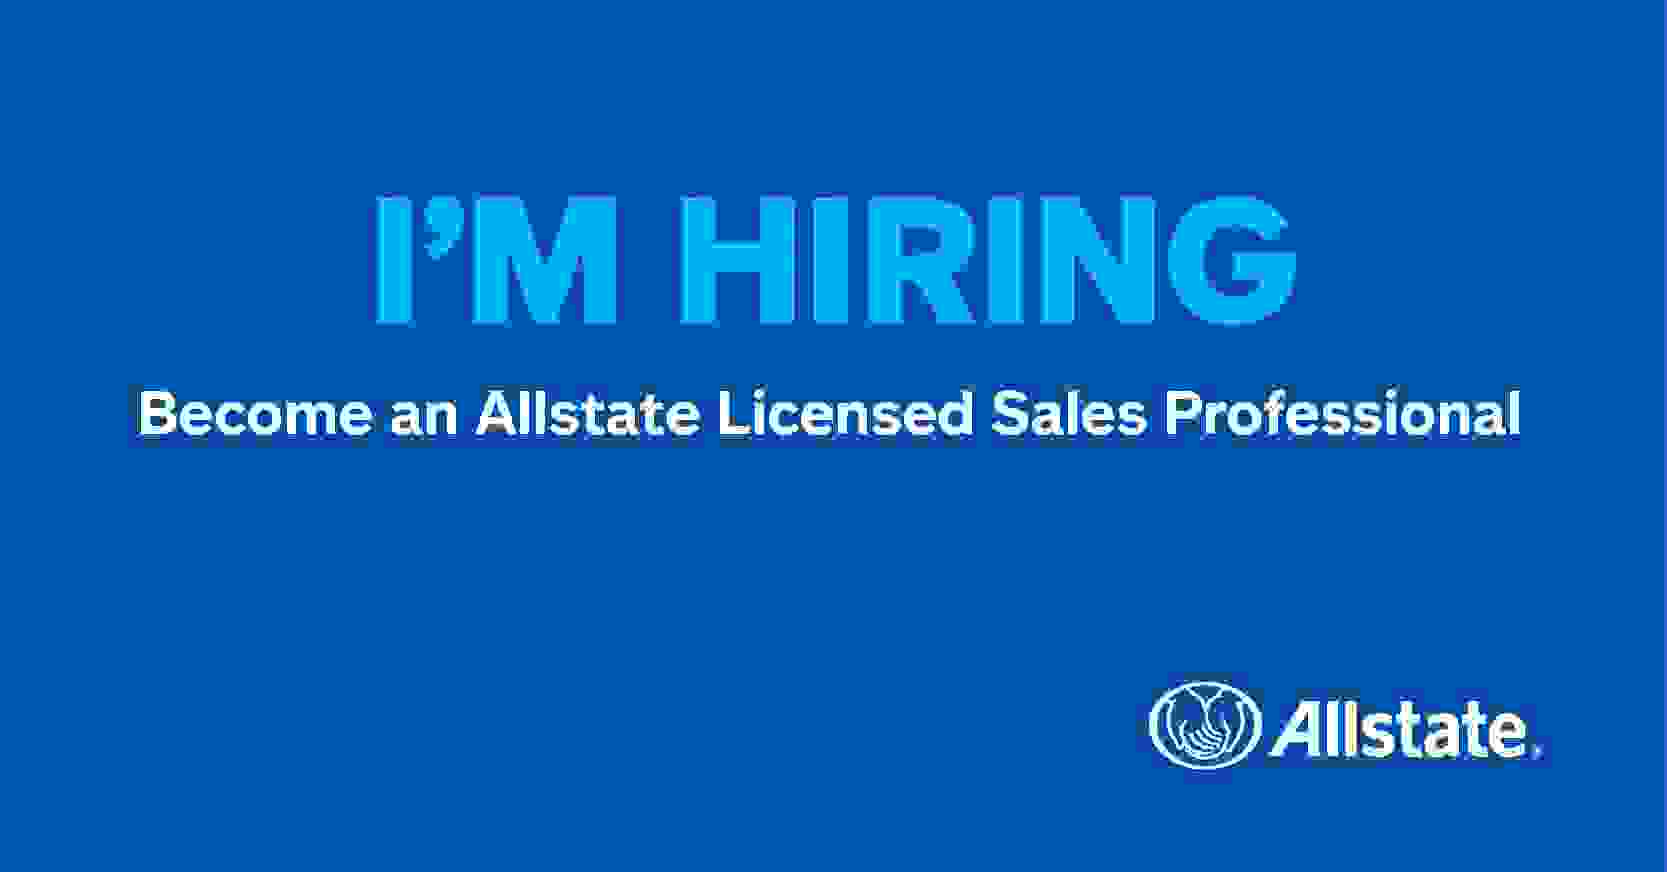 We're hiring. Become an Allstate Licensed Sales Professional